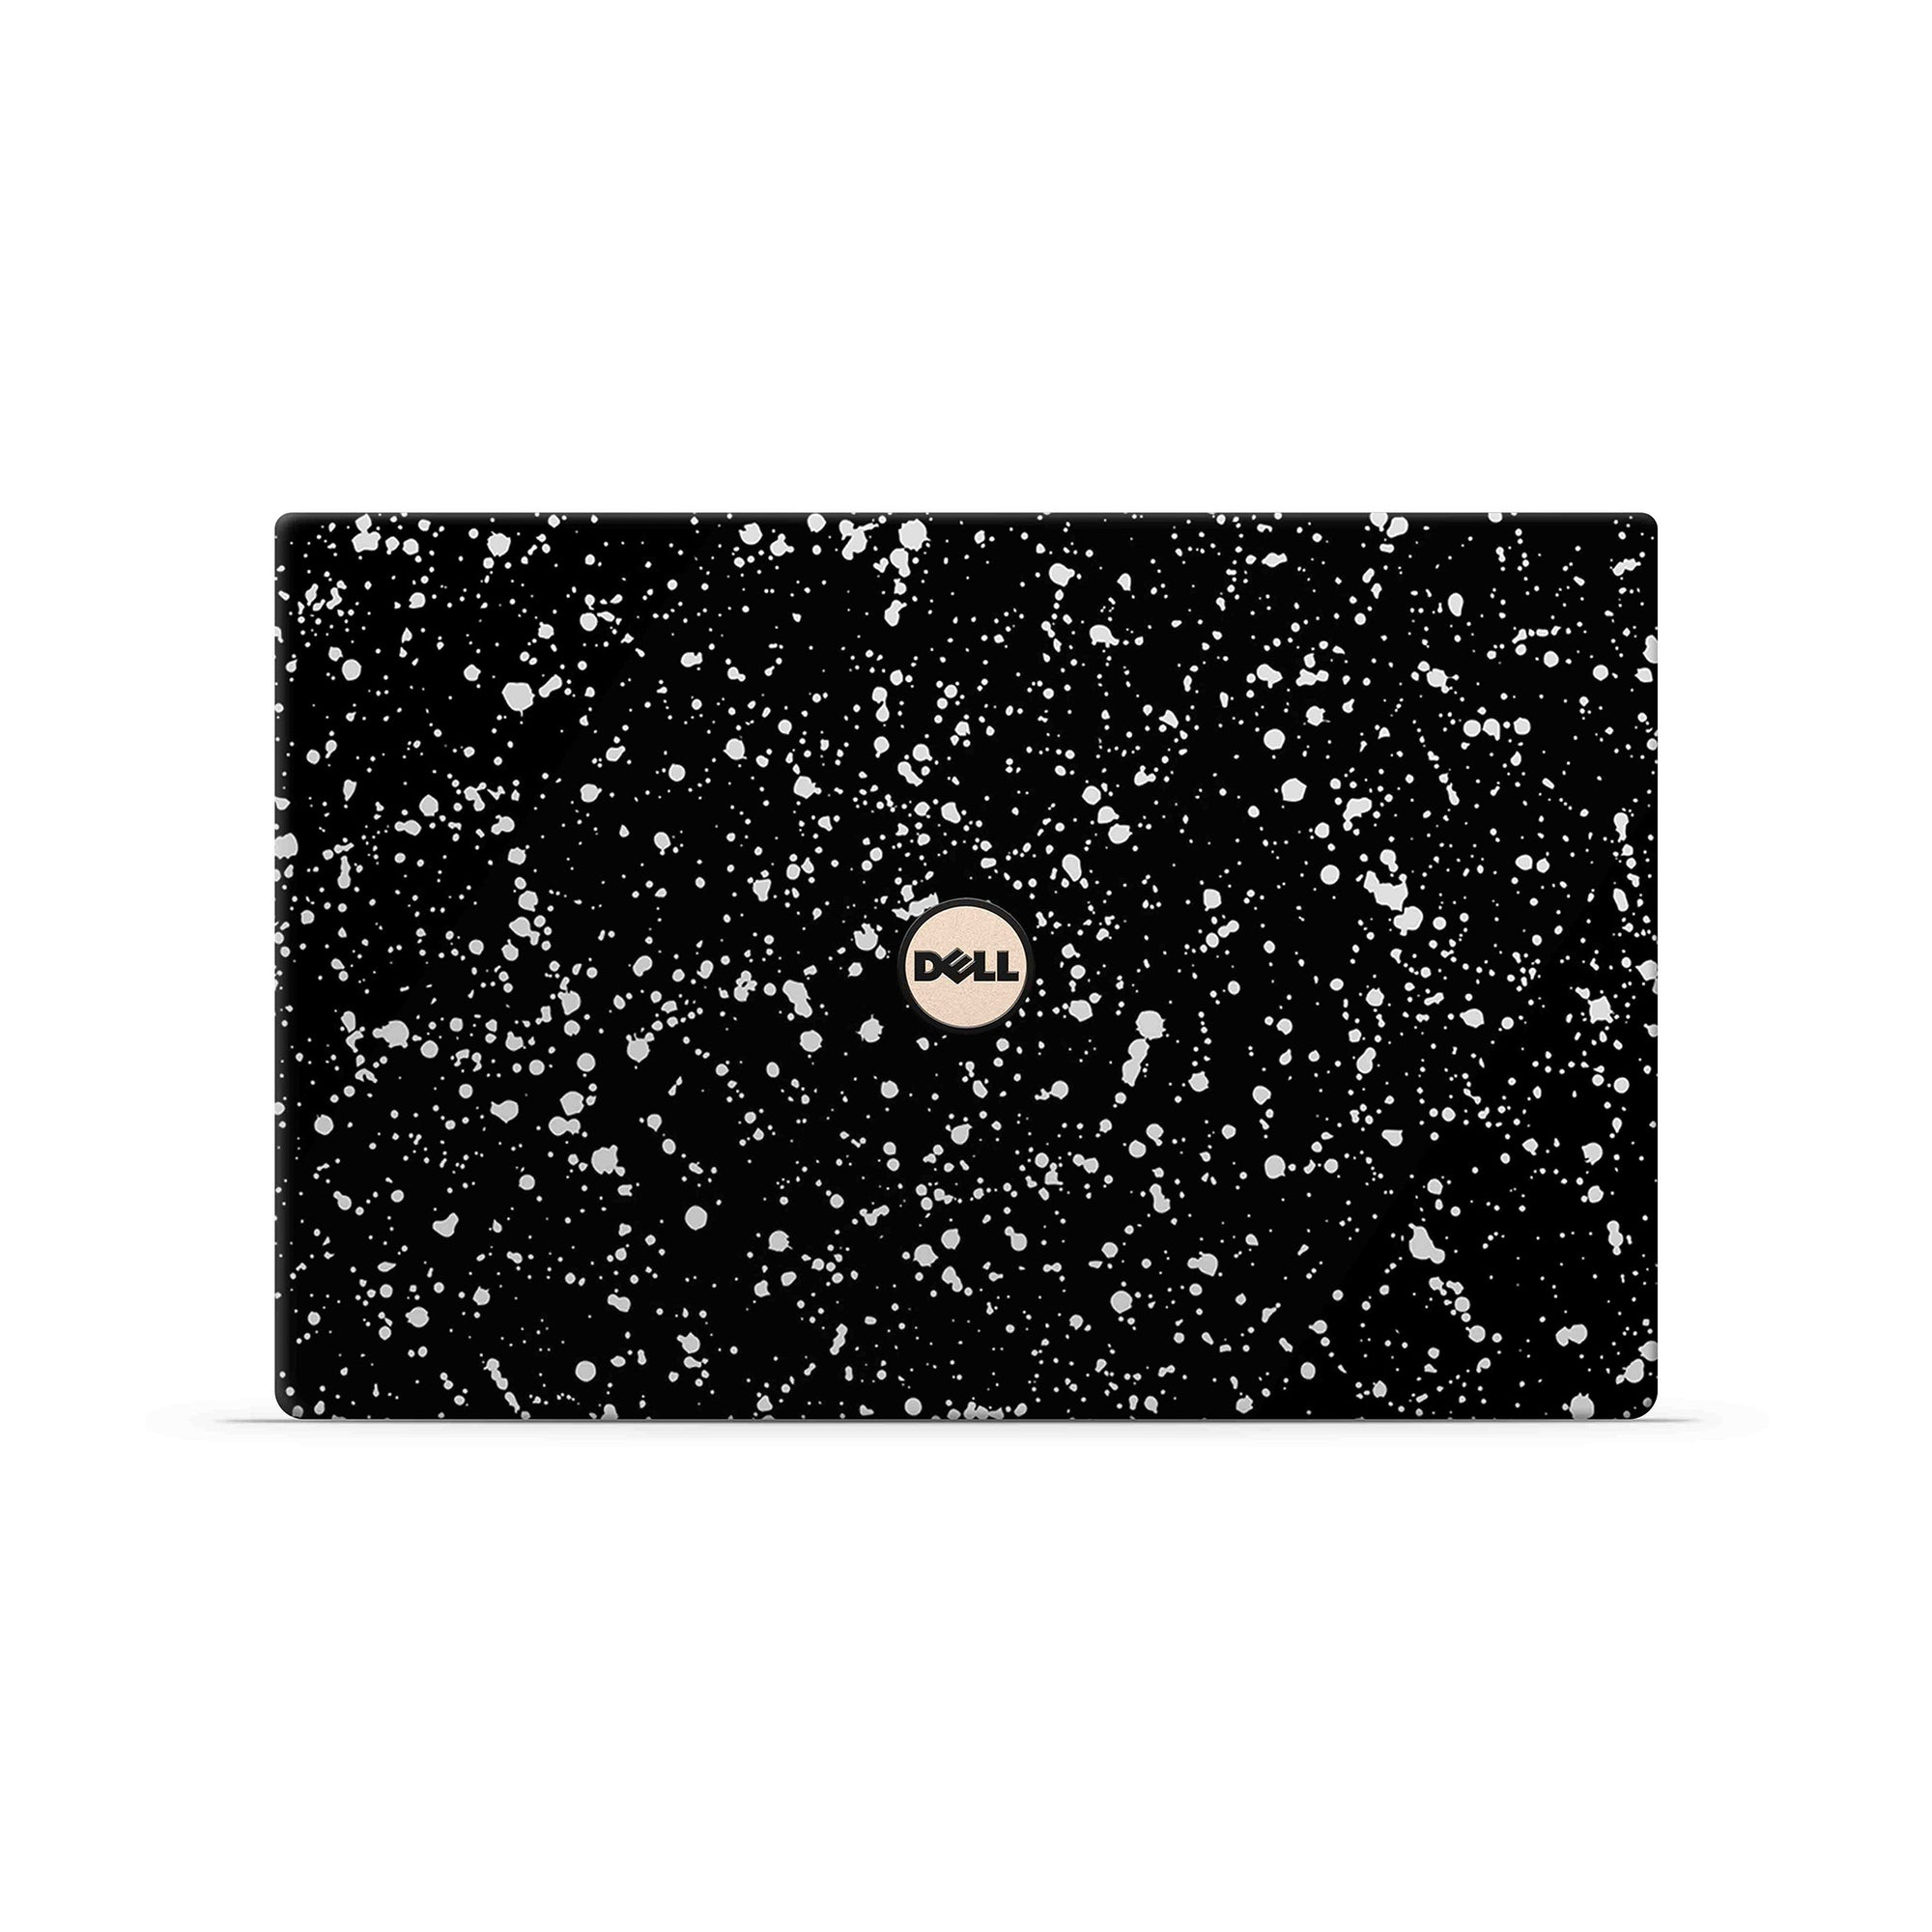 Black Speckle XPS 13 (9300) Skin